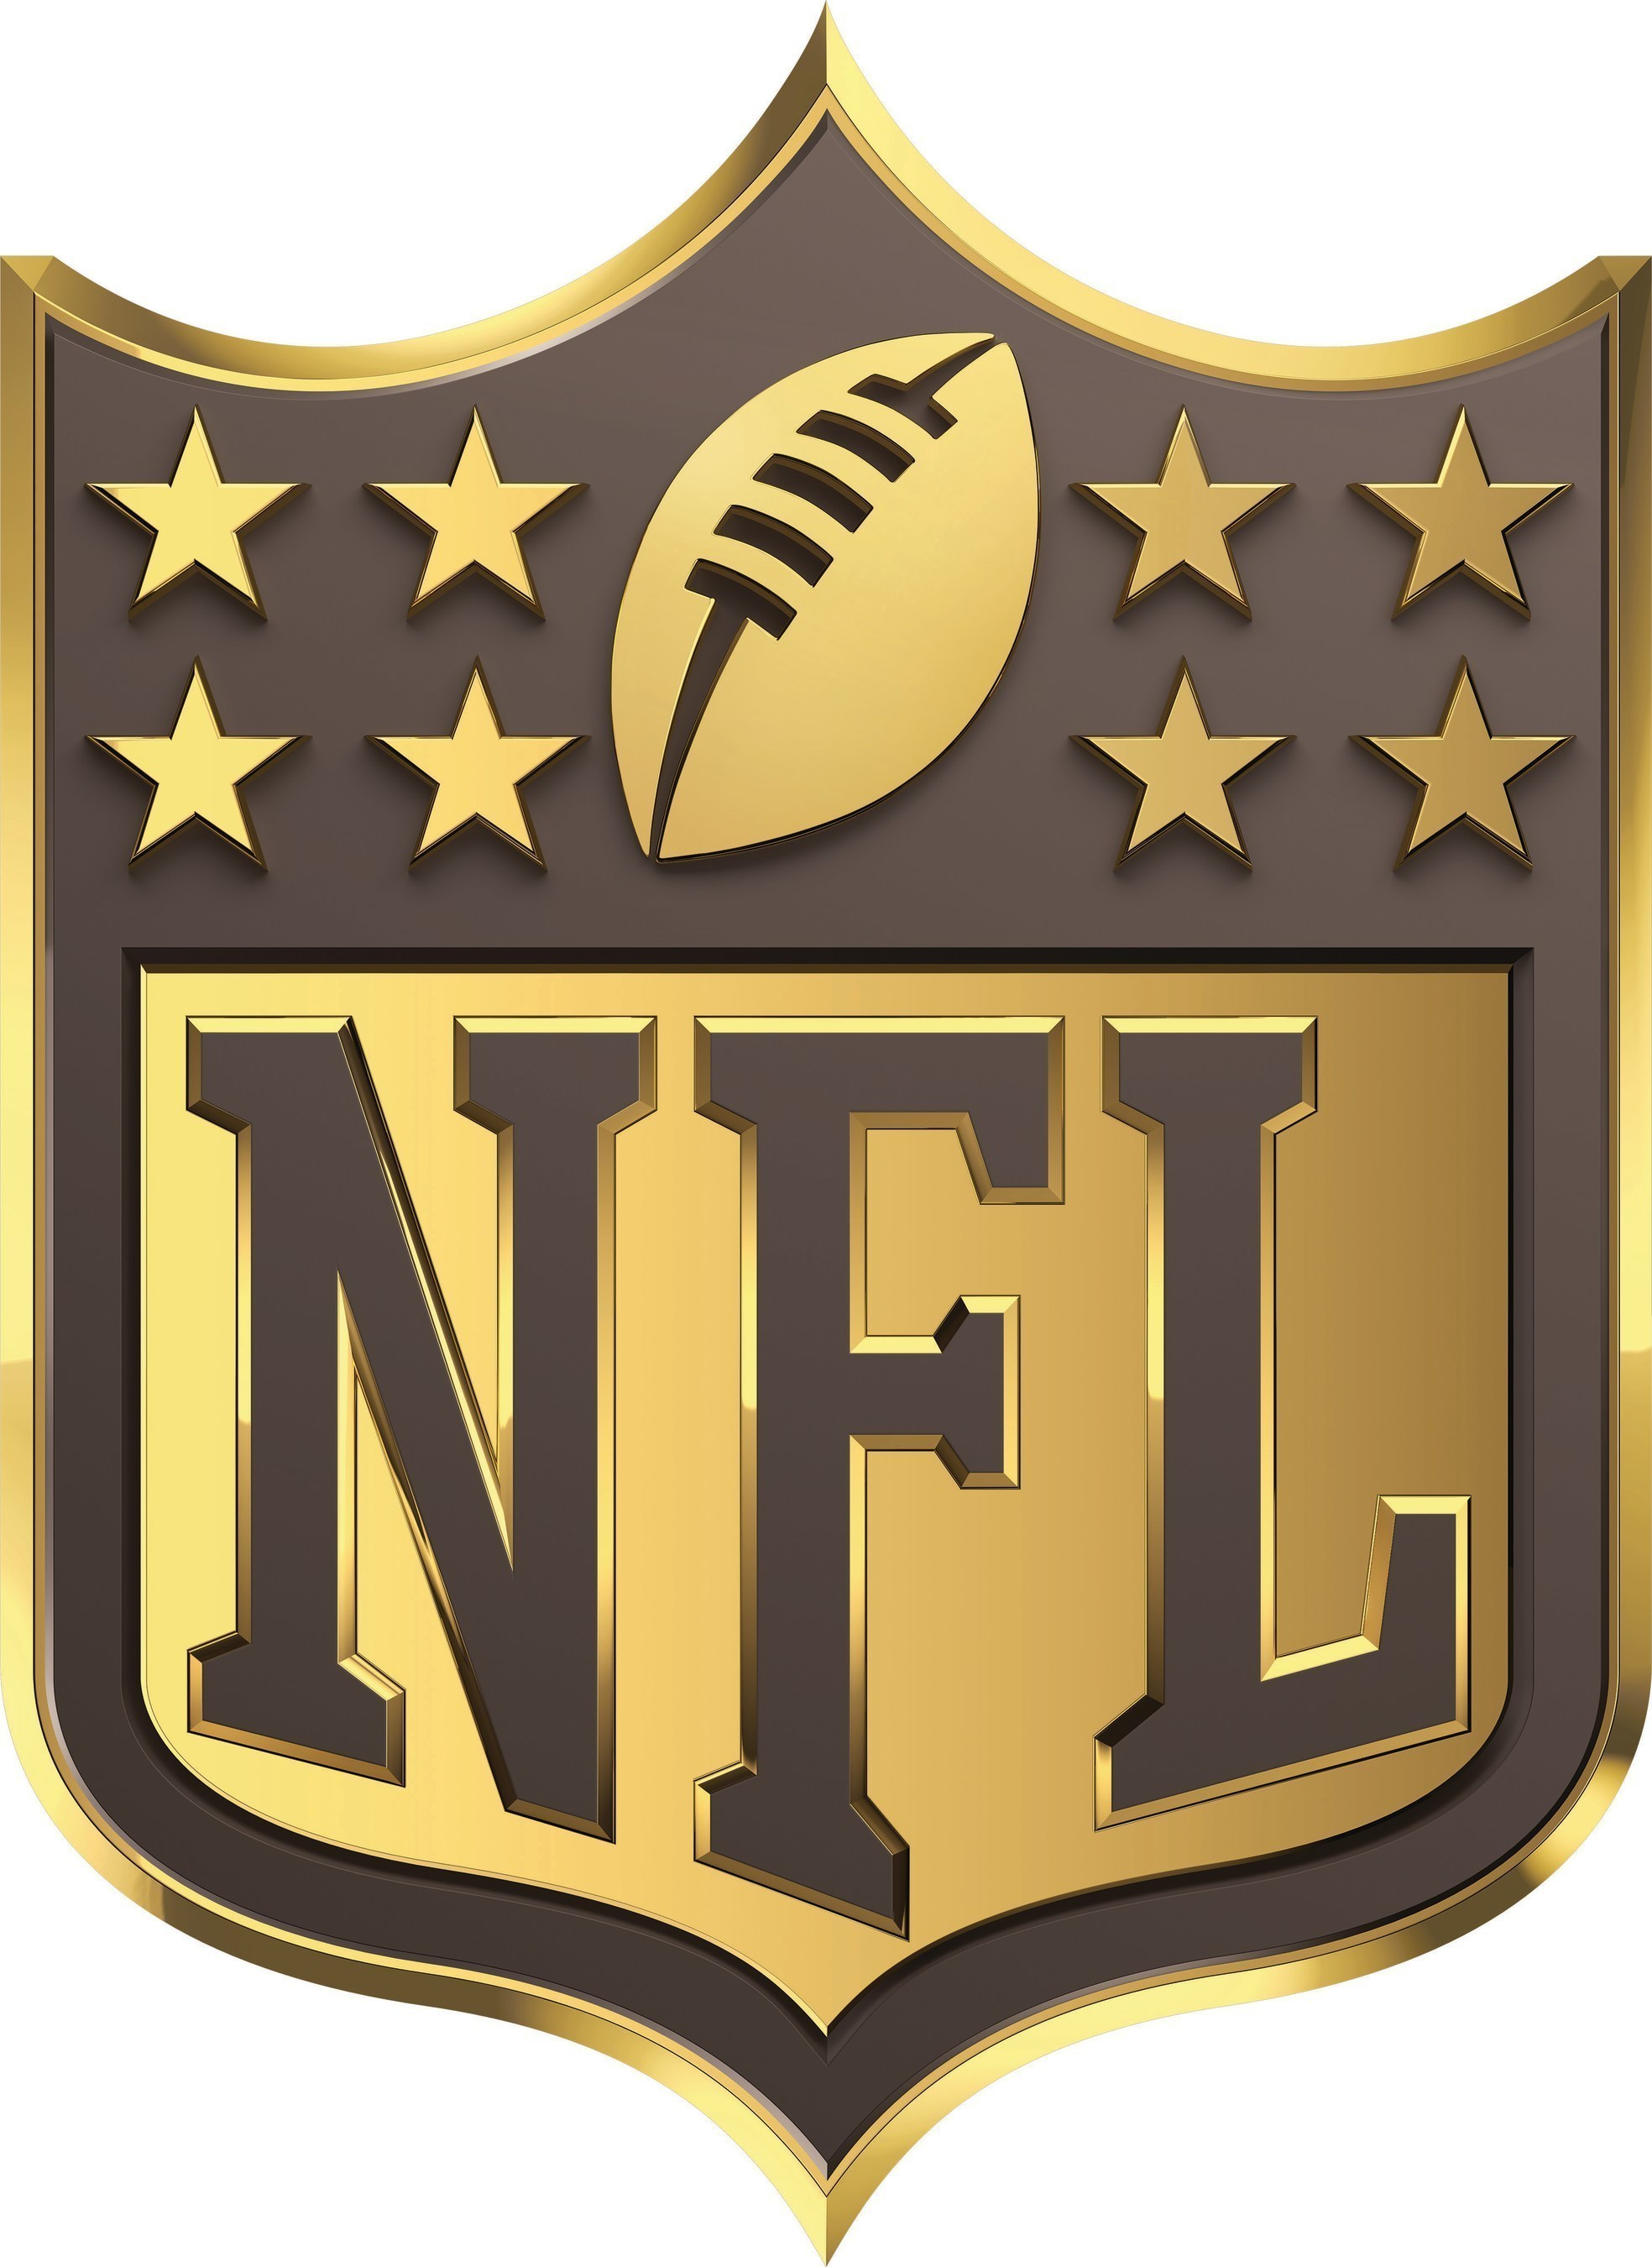 Siriusxm Nfl Football Schedule Live Sports News Talk Radio >> Siriusxm And National Football League Announce Six Year Extension Of